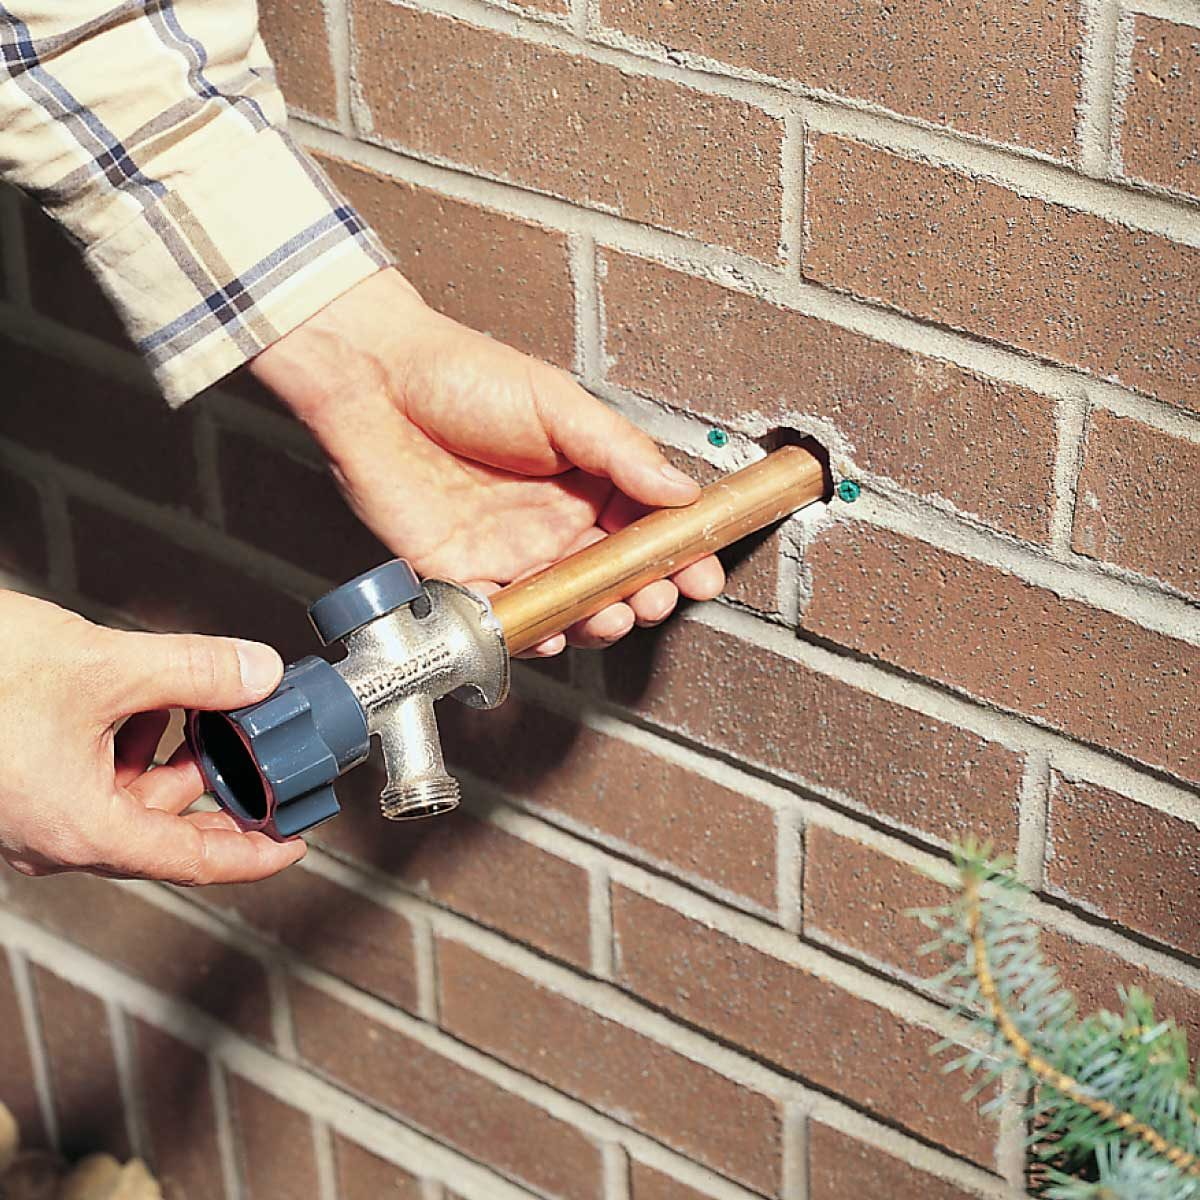 For Floor Furnace Wiring Diagram How To Install A Frost Proof Outdoor Faucet The Family